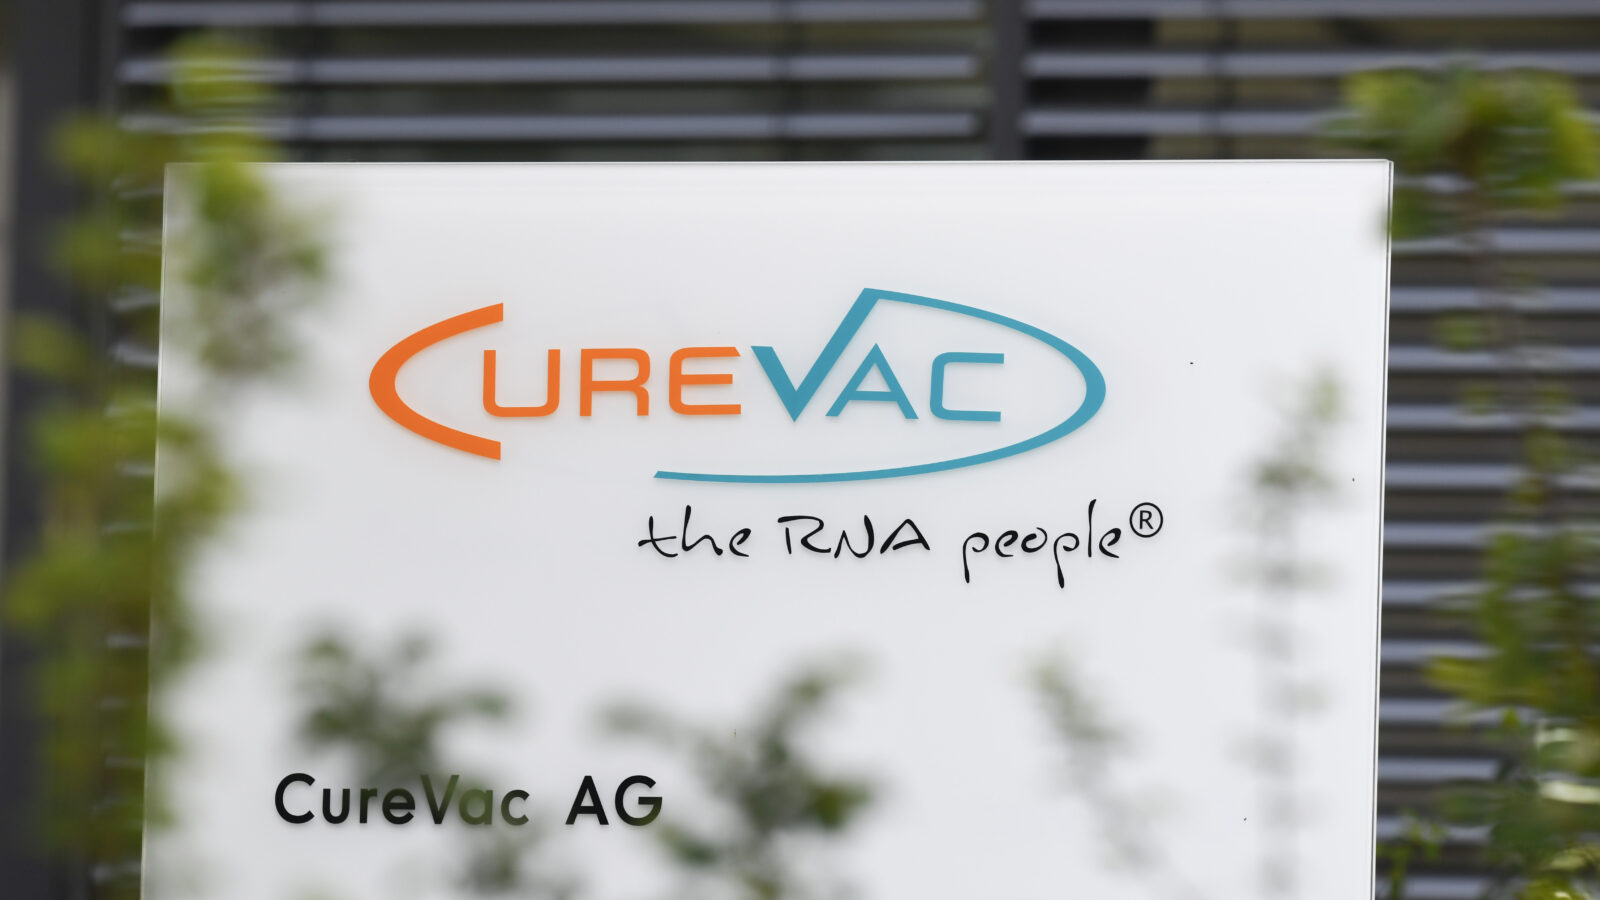 CureVac's value soars after IPO, as Covid-19 vaccine manufacturers become biotech's hottest companies